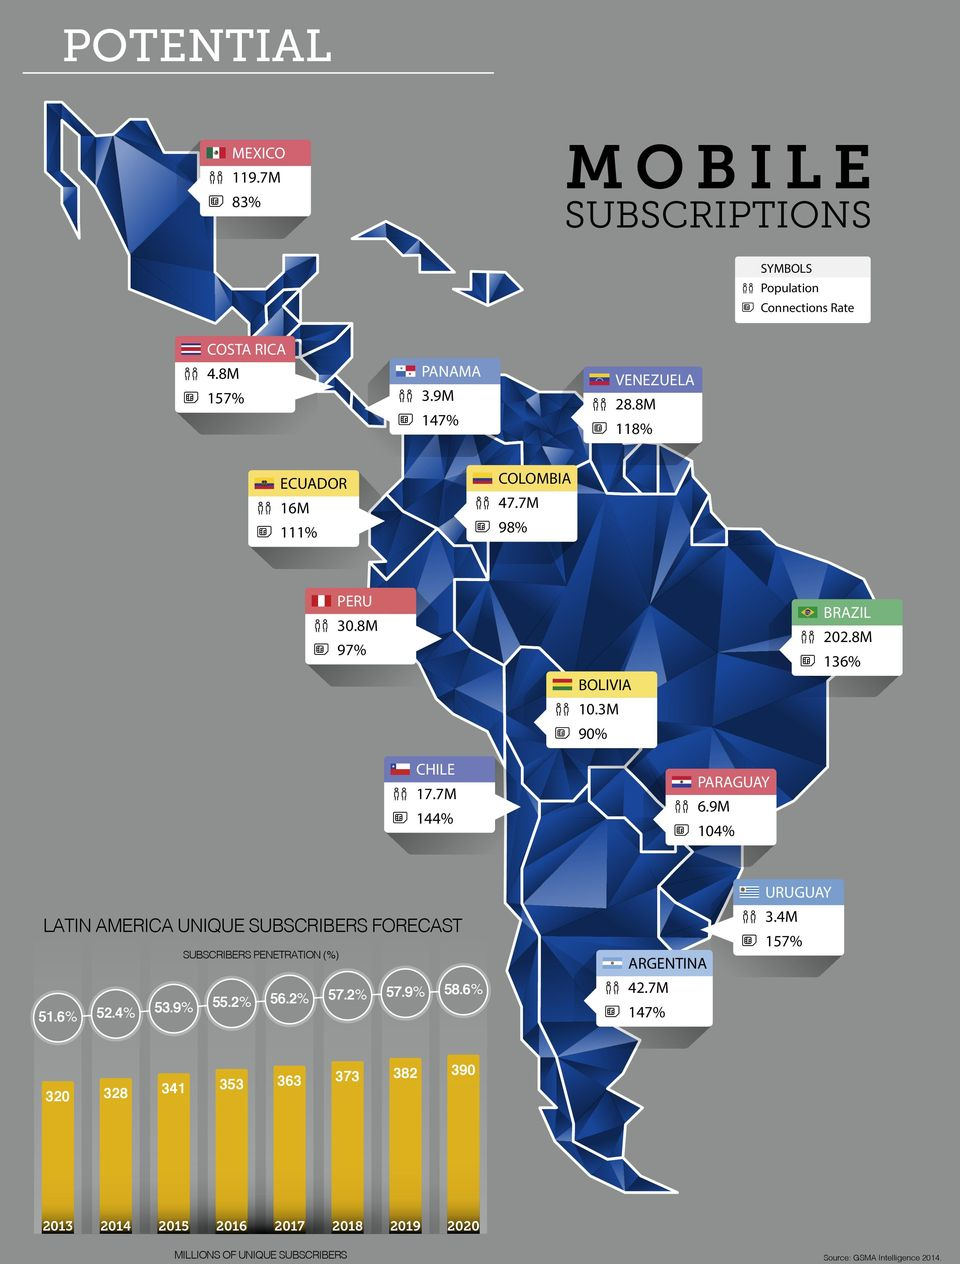 9M 104% LATIN AMERICA UNIQUE SUBSCRIBERS FORECAST SUBSCRIBERS PENETRATION (%) 51.6% 52.4% 53.9% 55.2% 56.2% 57.2% 57.9% 58.6% ARGENTINA 42.